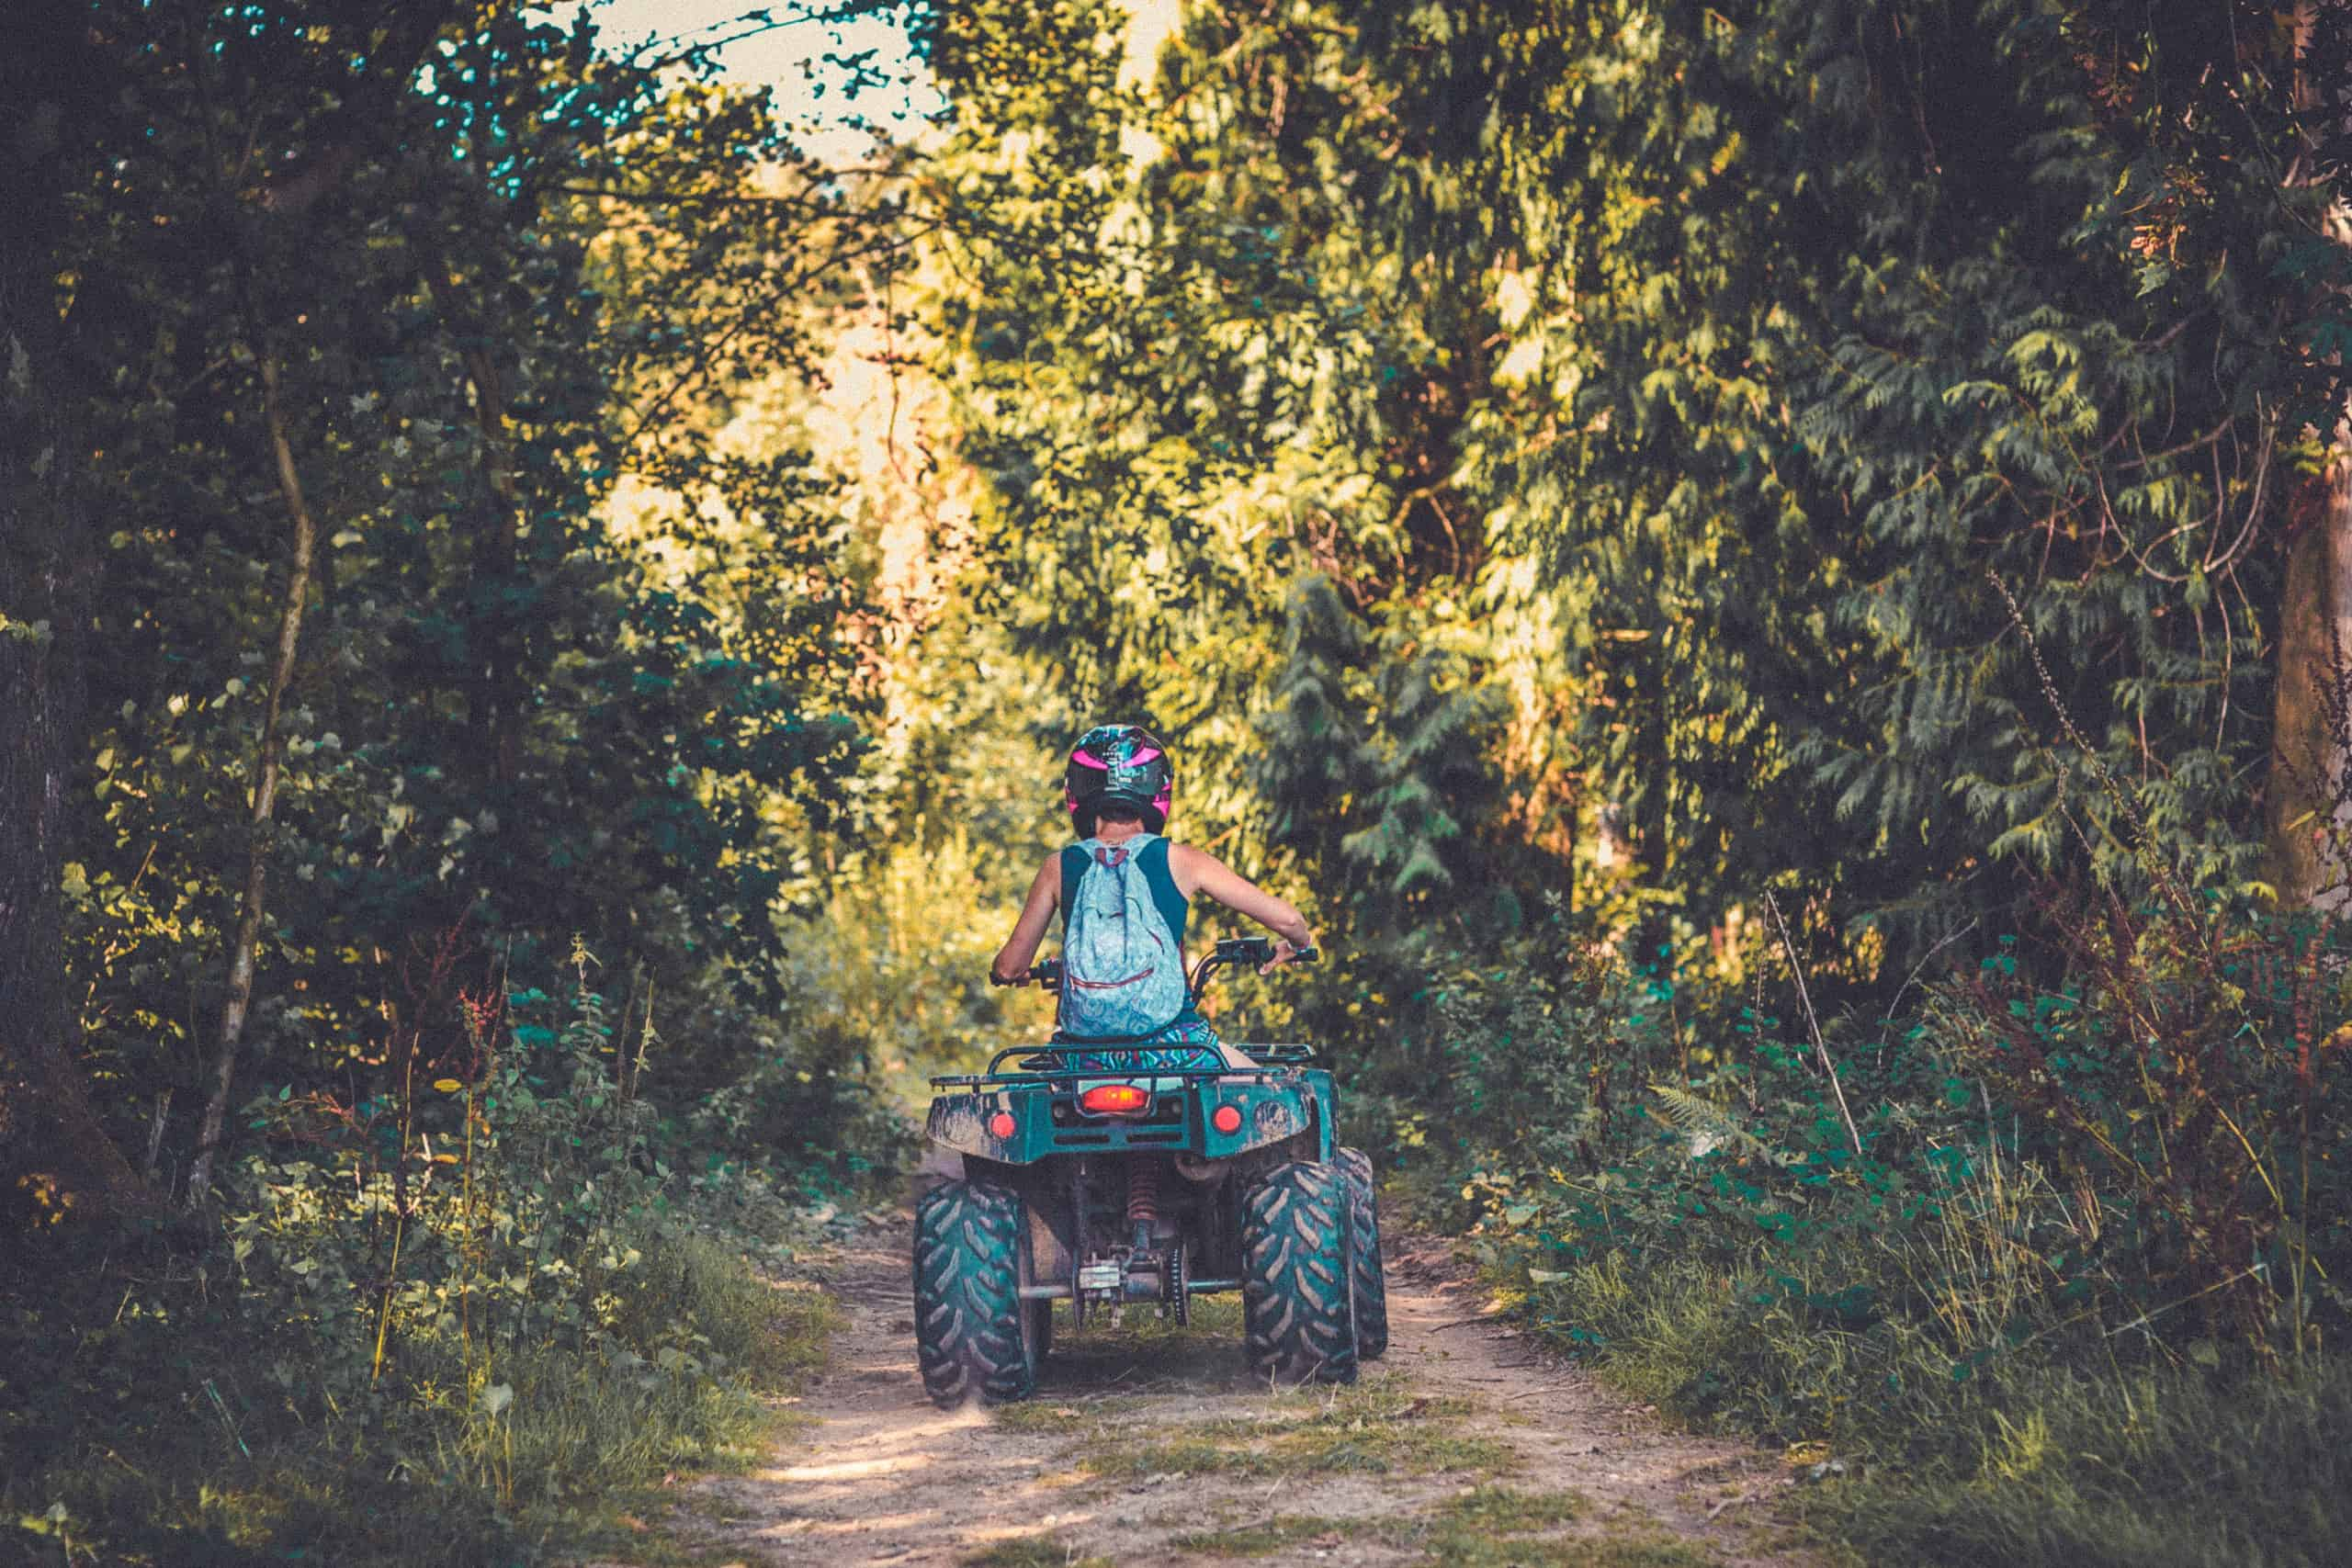 Back of someone on a quad bike at Camp Wildfire. A summer weekend break in a forest near London and Kent. An outdoor woodland retreat featuring adventure activities, live music, DJs, parties and camping. Half summer adventure activity camp, half music festival, for adults only.